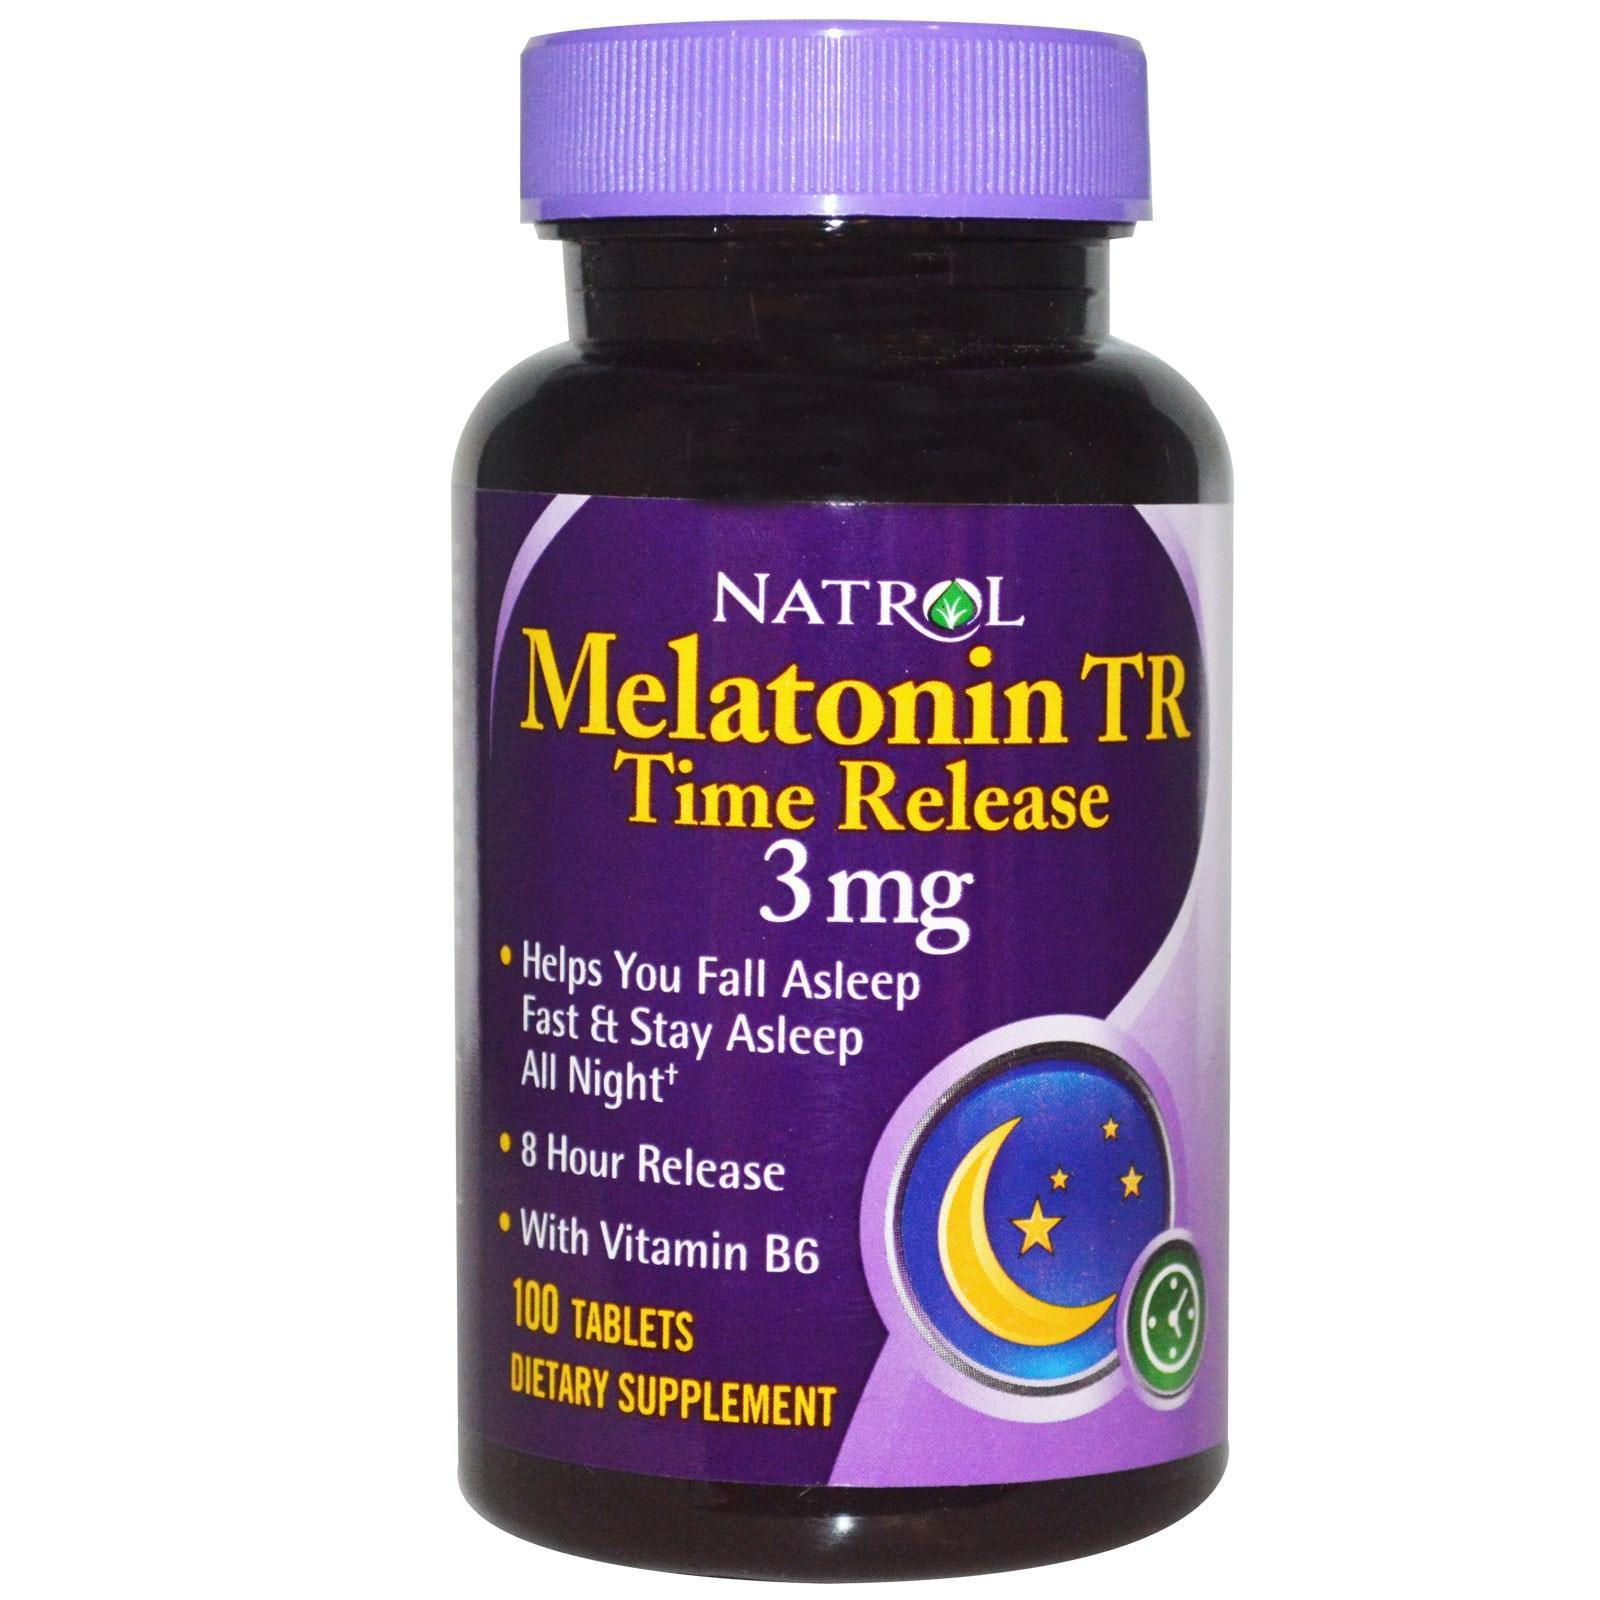 What's Melatonin for ?